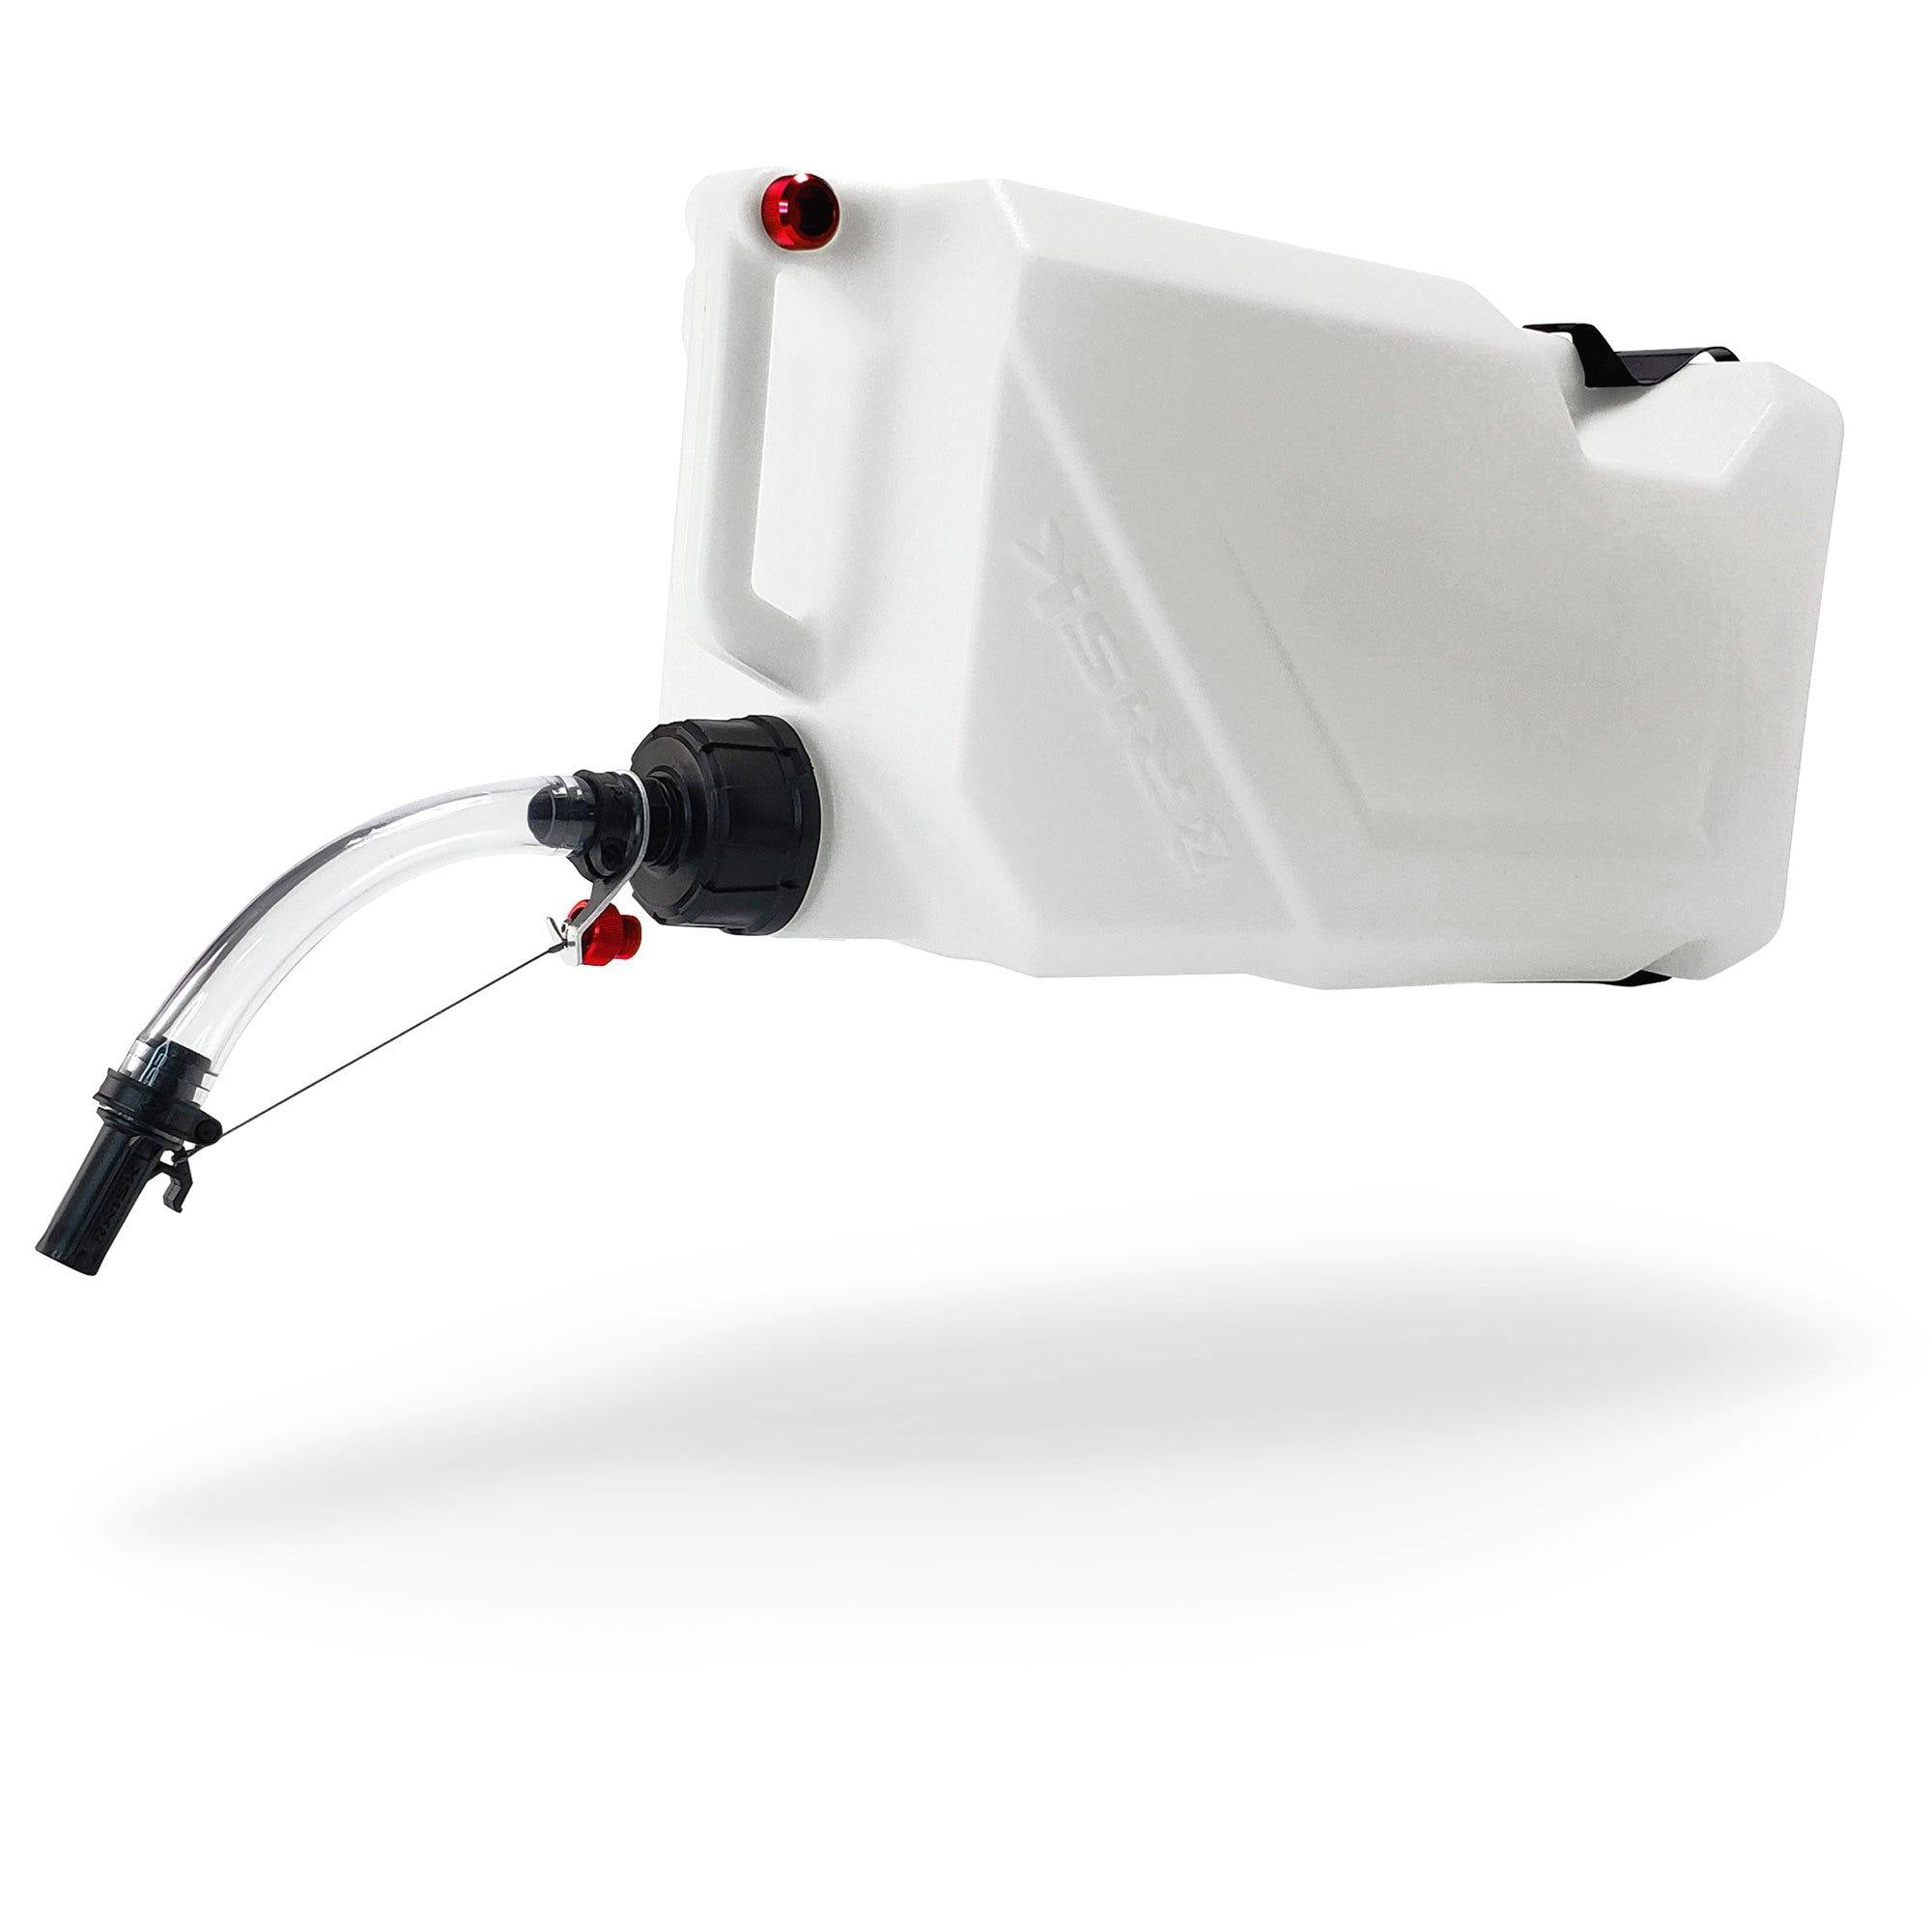 EZ3/EZ5 Utility Jug - Premium Can available in 3 gallon or 5 gallon by Risk Racing | STKR Concepts